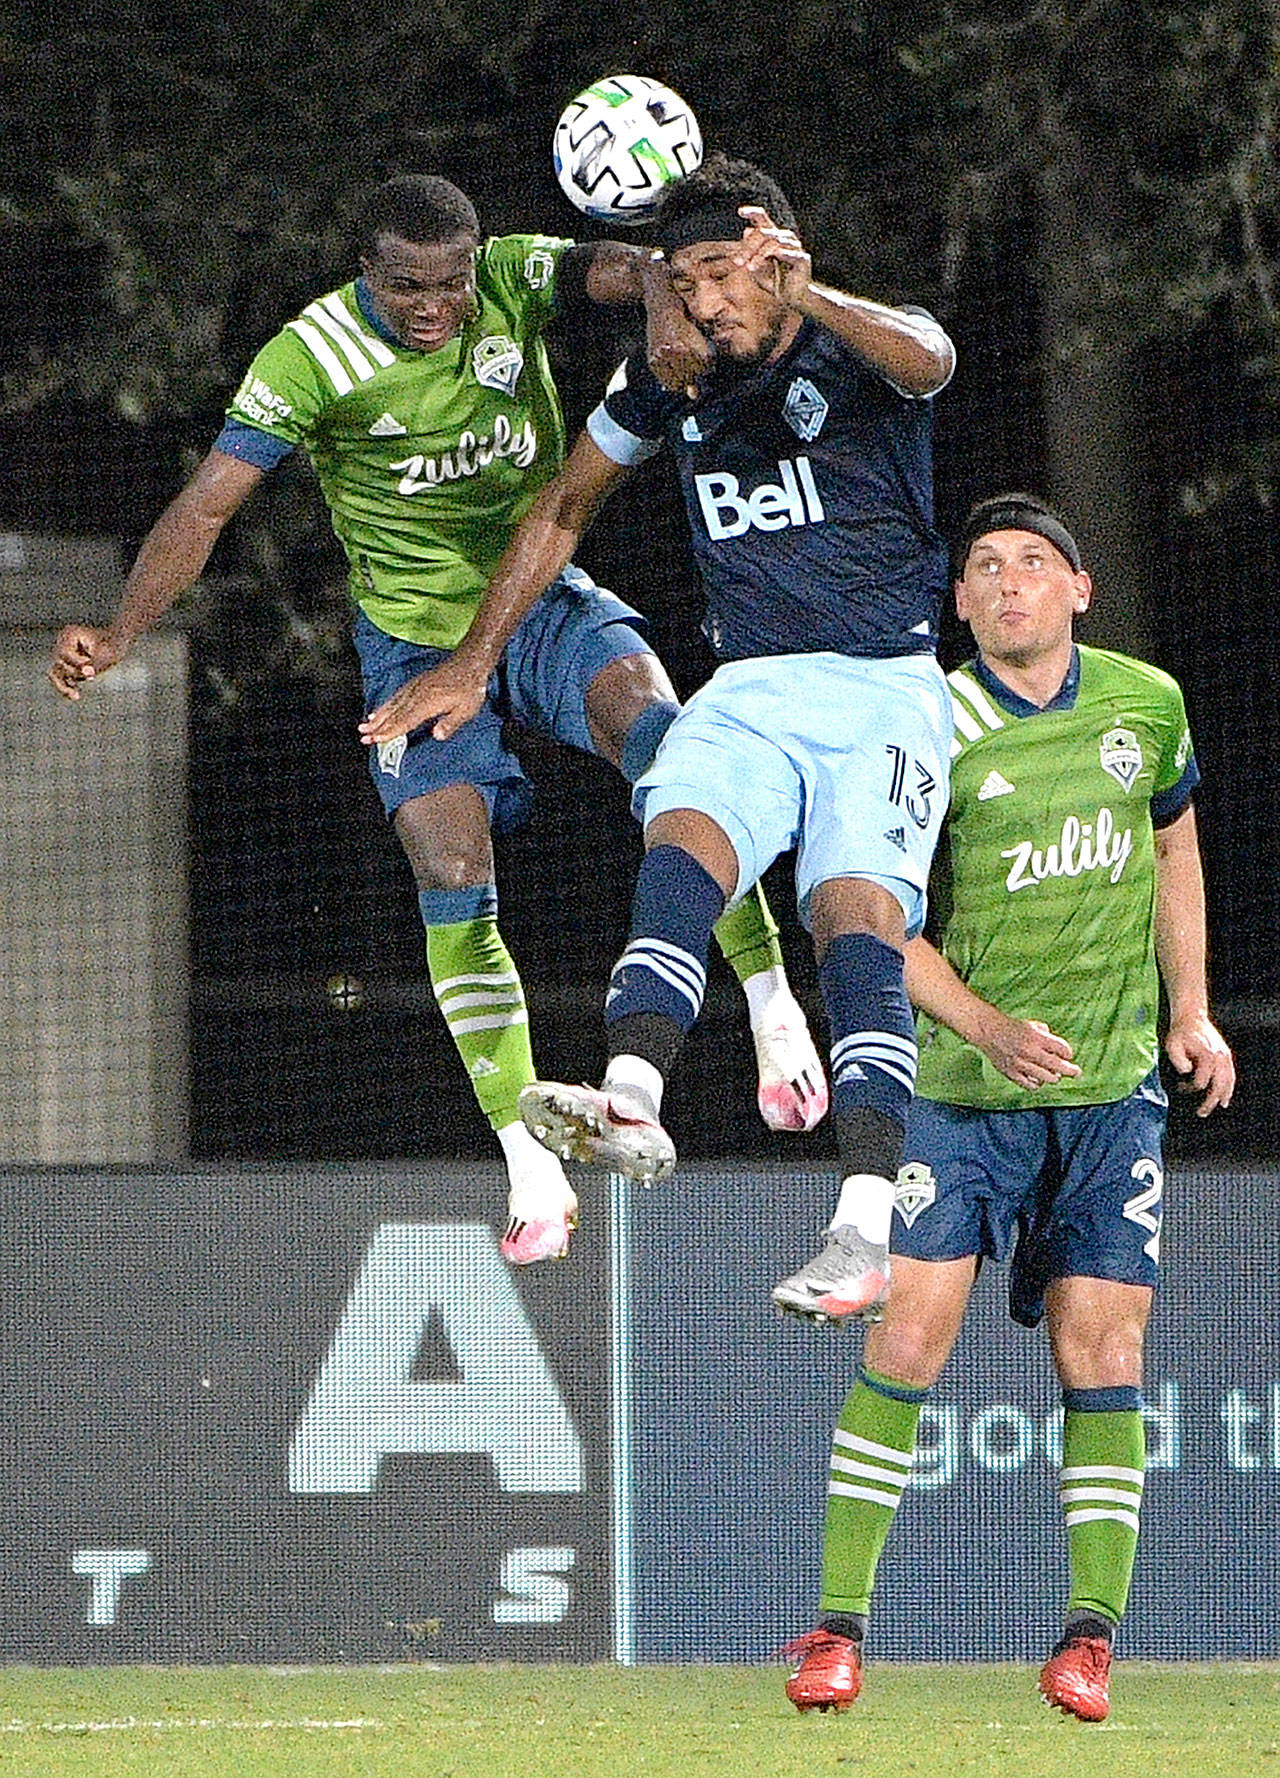 Seattle Sounders defender Shane O'Neill, right, watches as defender Nouhou Tolo, left, and Vancouver Whitecaps defender Derek Cornelius (13) compete for a header during the second half of an MLS soccer match, Monday, July 20, 2020, in Kissimmee, Fla. (AP Photo/Phelan M. Ebenhack)